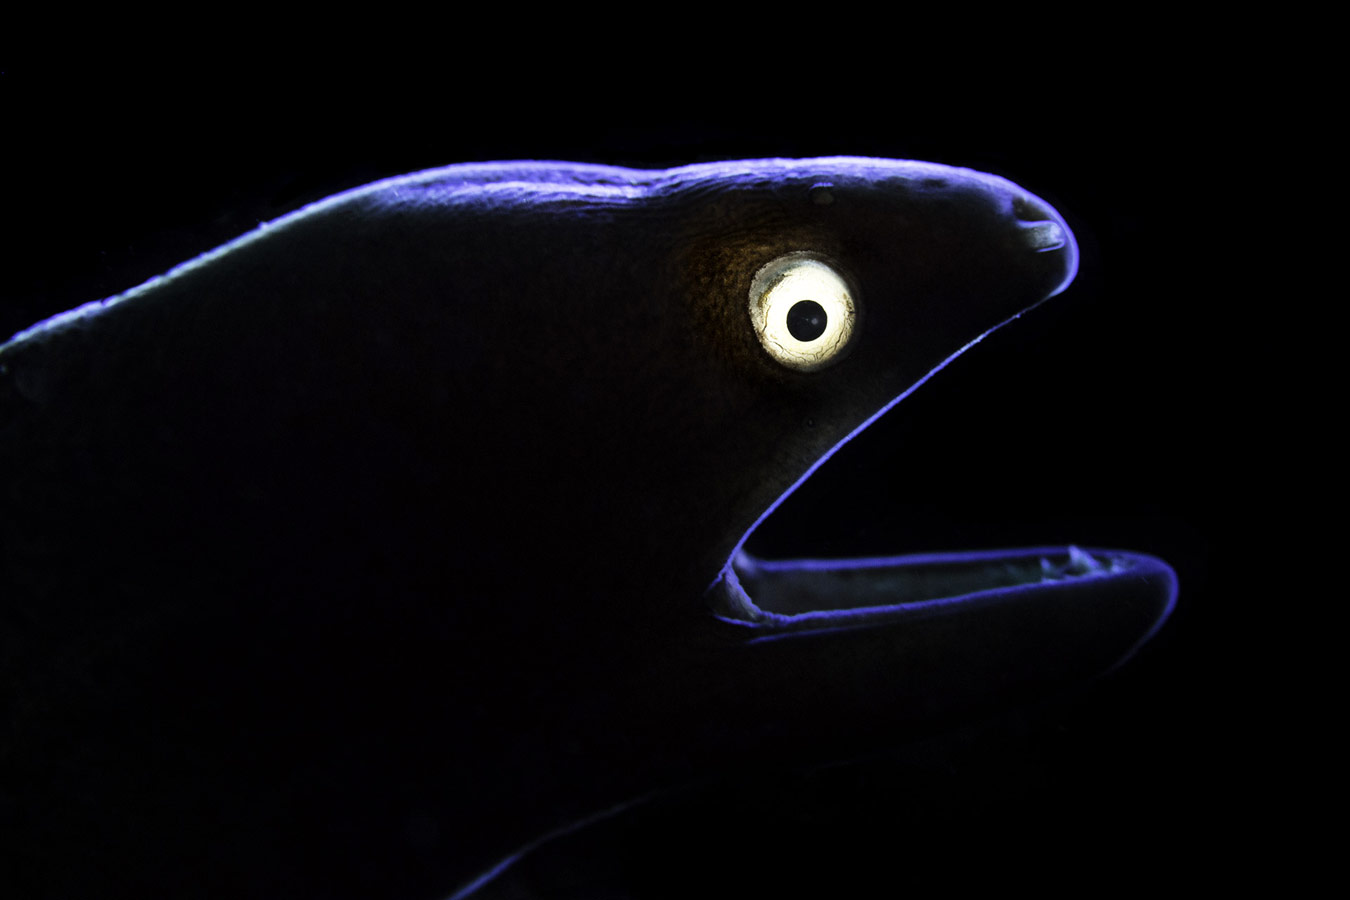 Eel, © Liang Fu, Beijing, China, Highly Honored Ocean, Nature's Best Photography Asia